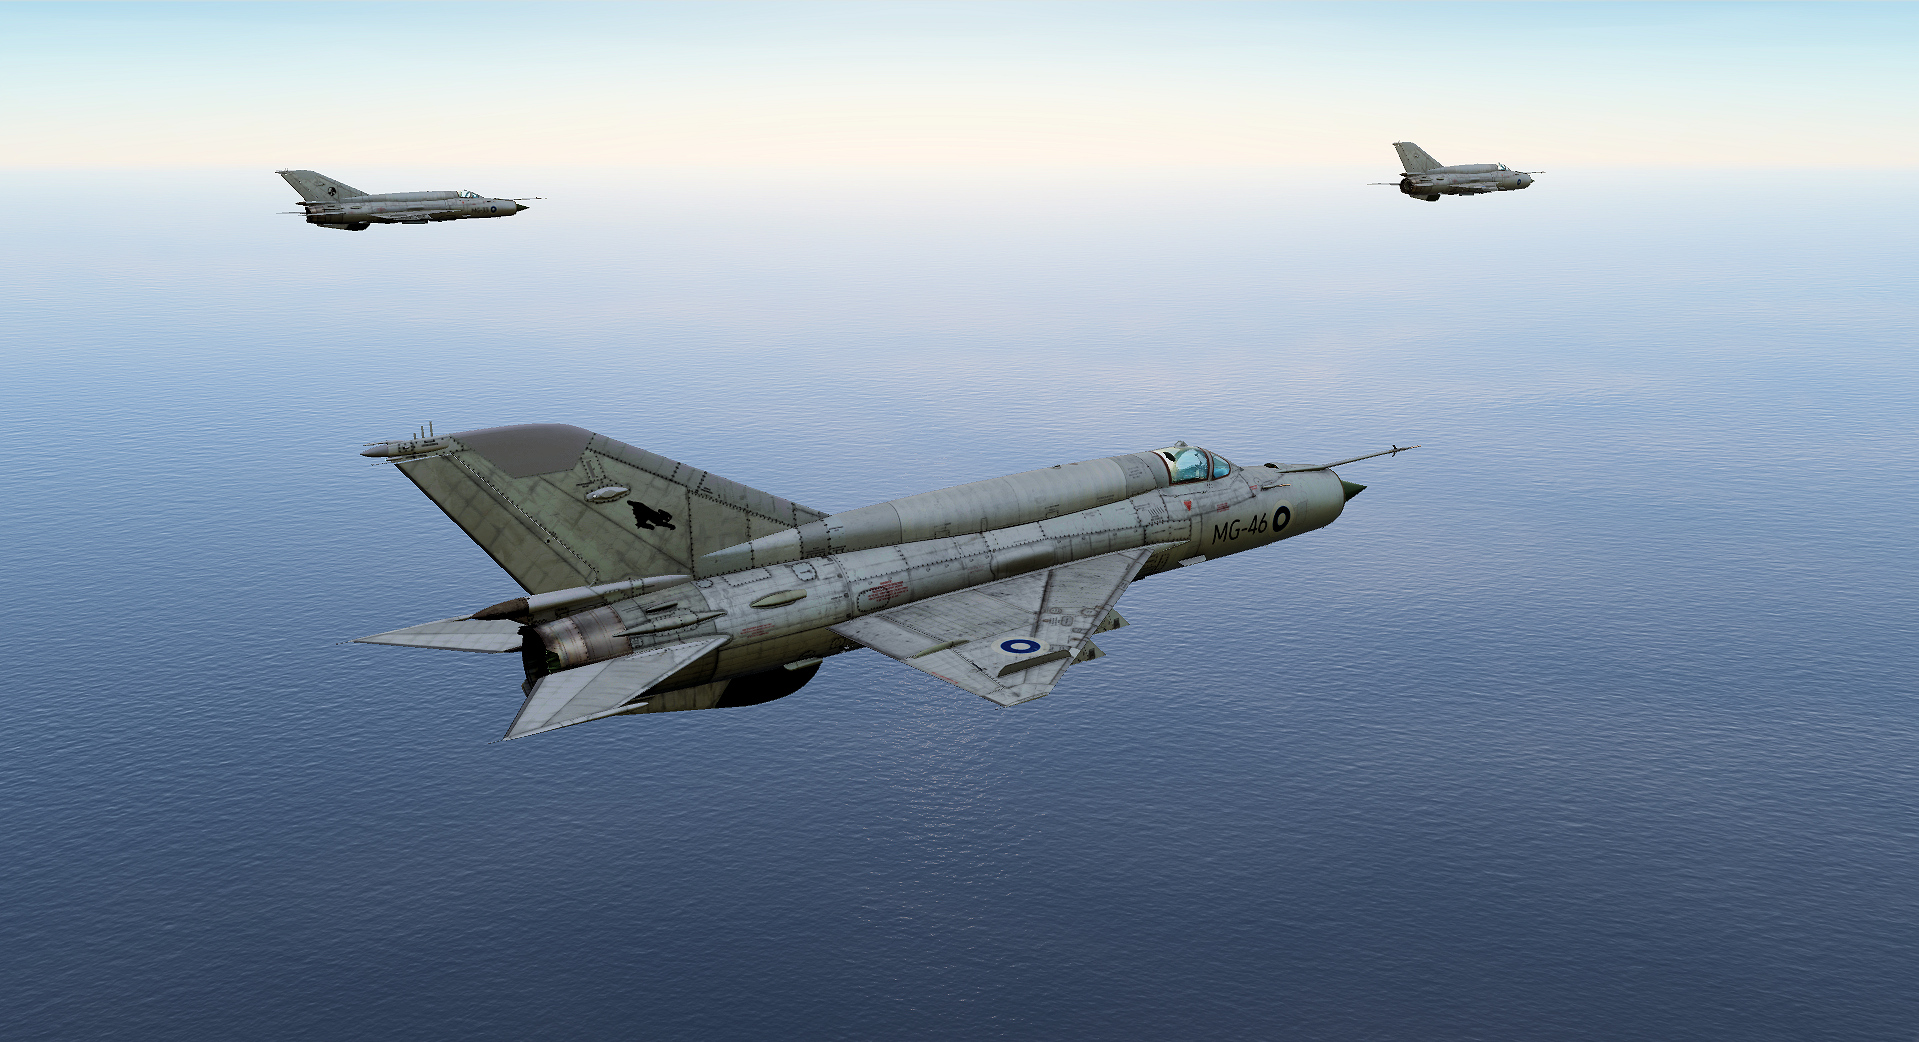 Finnish Air Force MiG-21 (Fictional-kind-of)